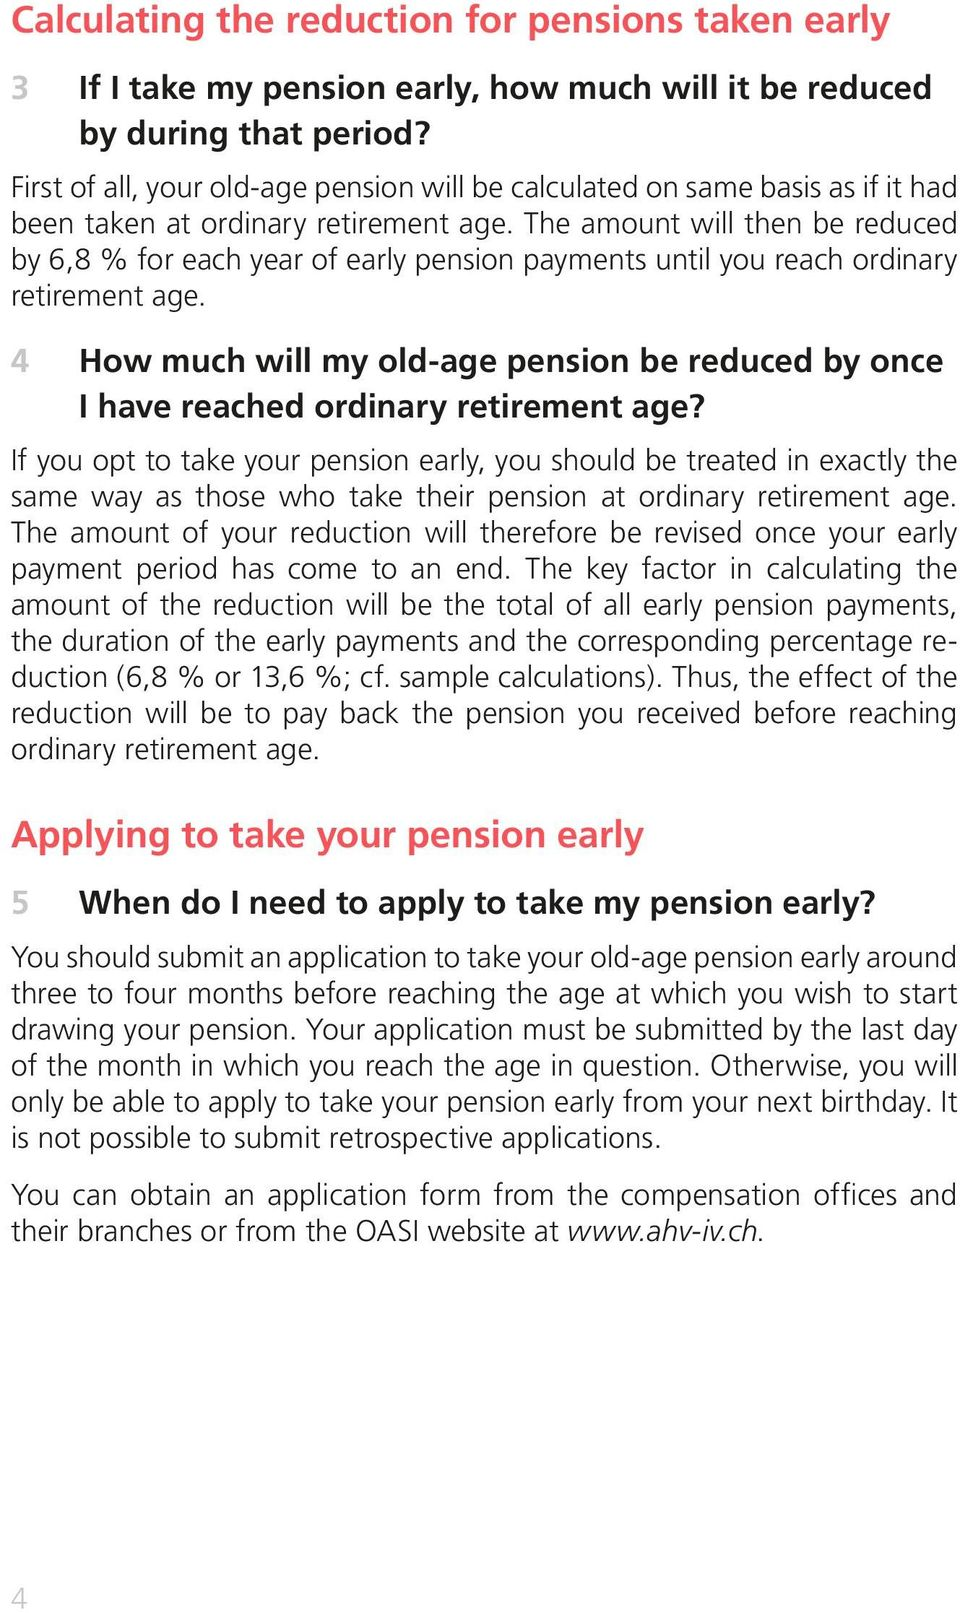 The amount will then be reduced by 6,8 % for each year of early pension payments until you reach ordinary retirement age.